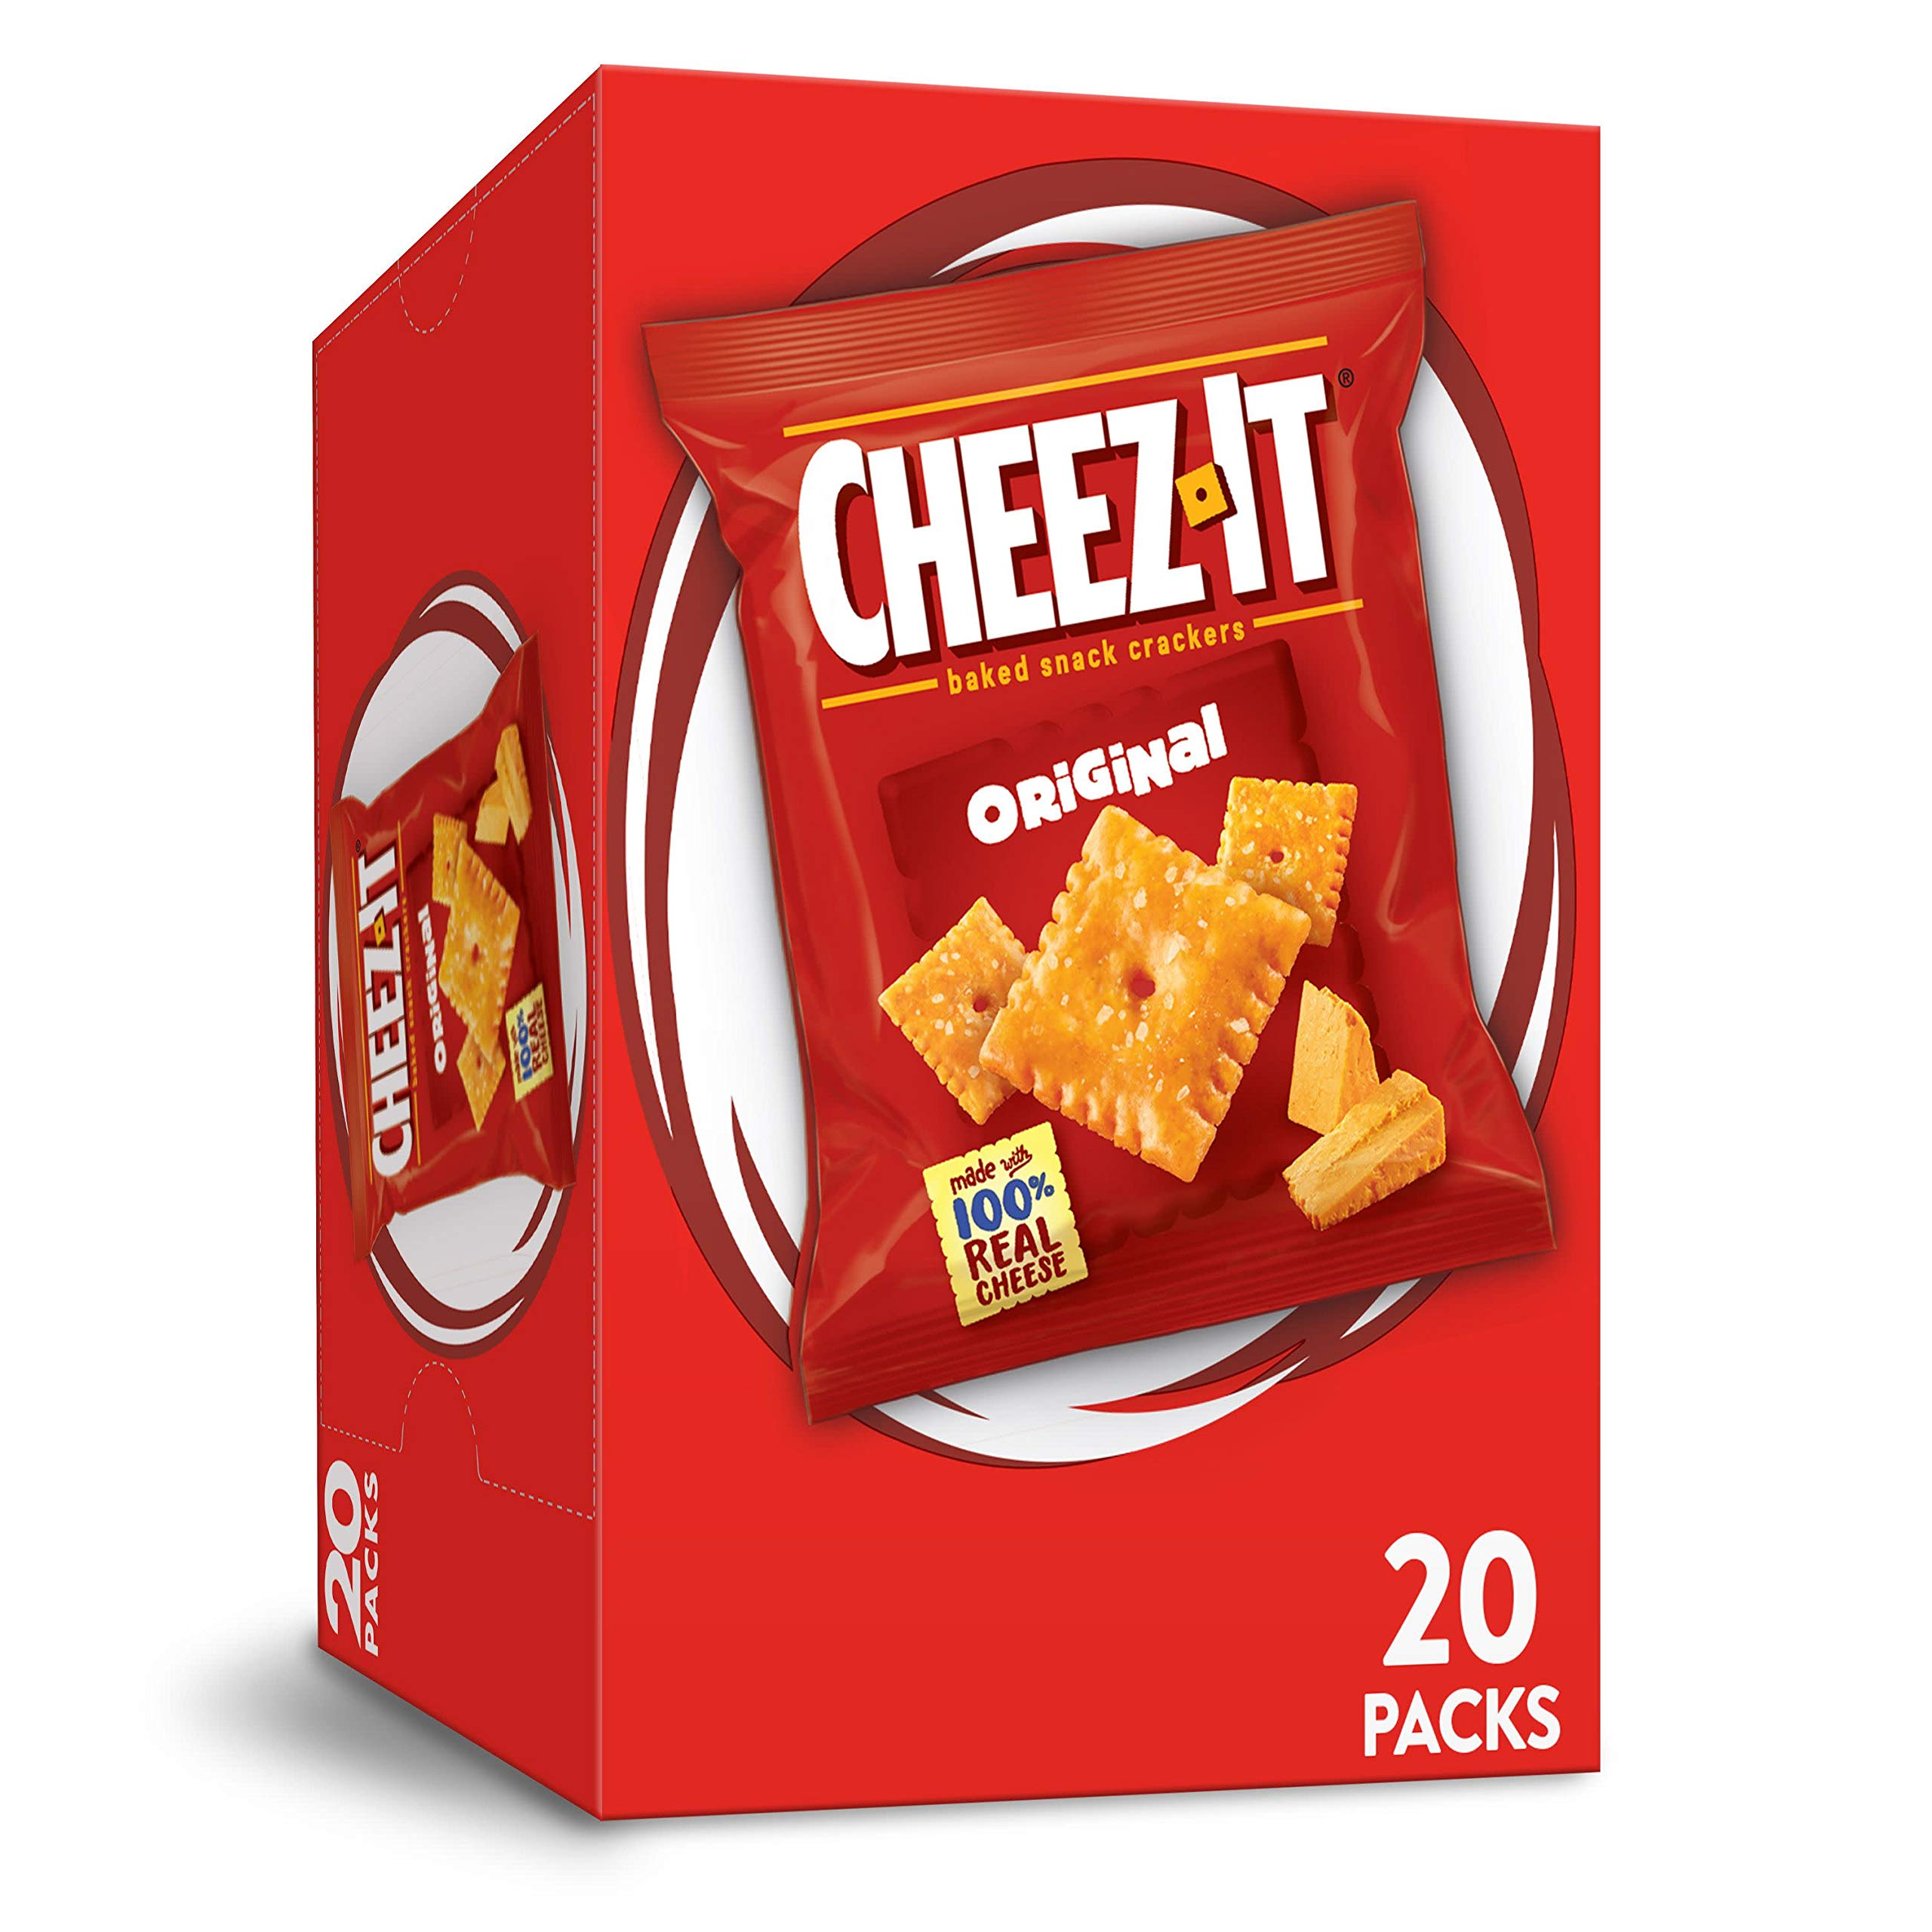 Cheez-It Baked Snack Cheese Crackers, Original, Made with Real Cheese, 20oz Box(20 Count)